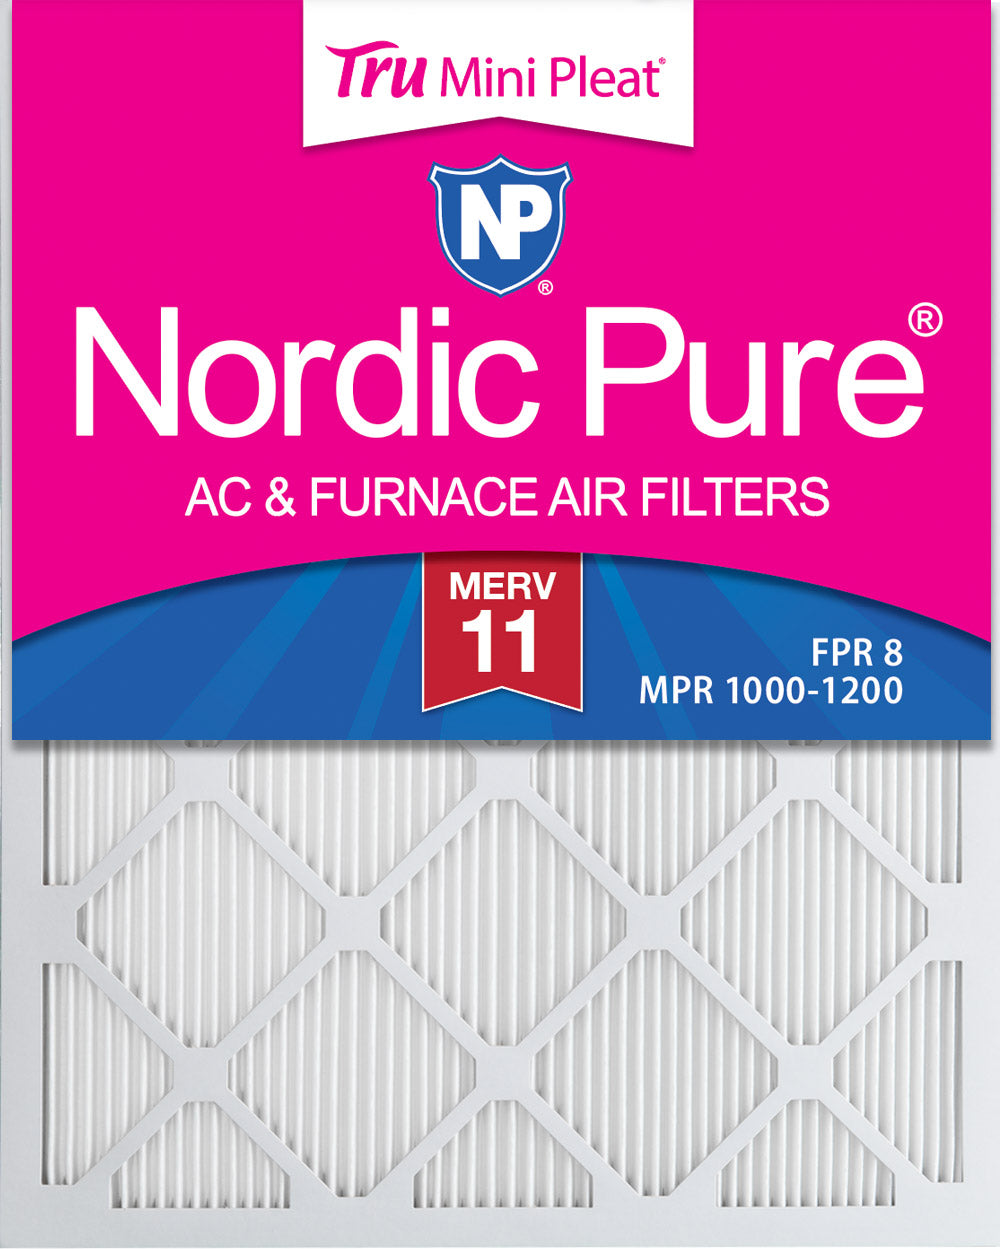 14x25x1 Tru Mini Pleat MERV 11 AC Furnace Air Filters 6 Pack